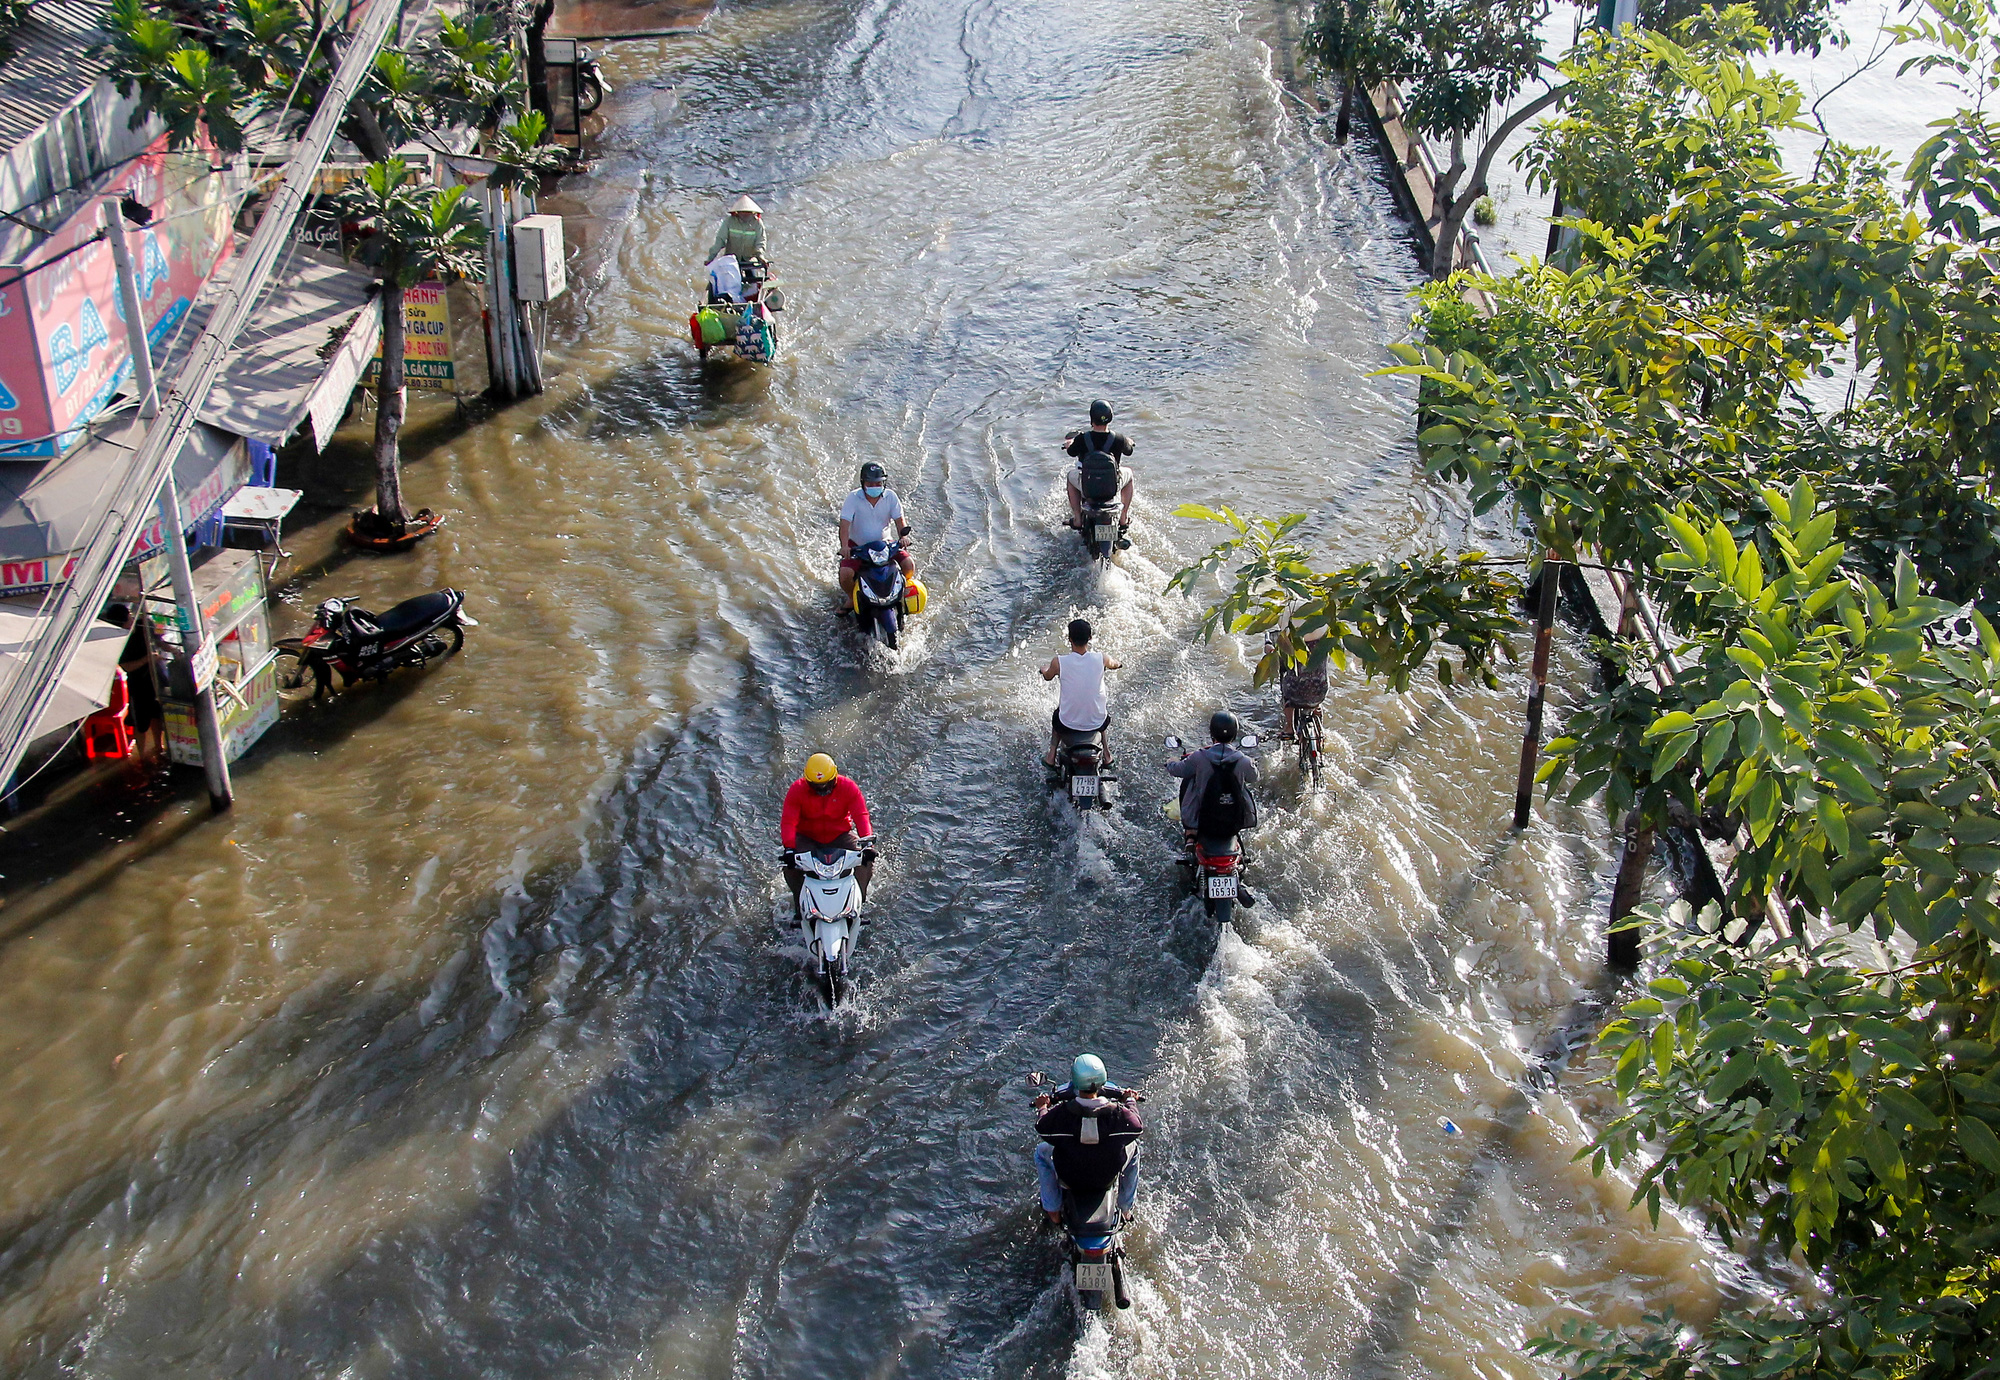 Tran Xuan Soan Street in District 7, Ho Chi Minh City is already inundated at 4:00 pm on November 15, 2020. Photo: Chau Tuan / Tuoi Tre